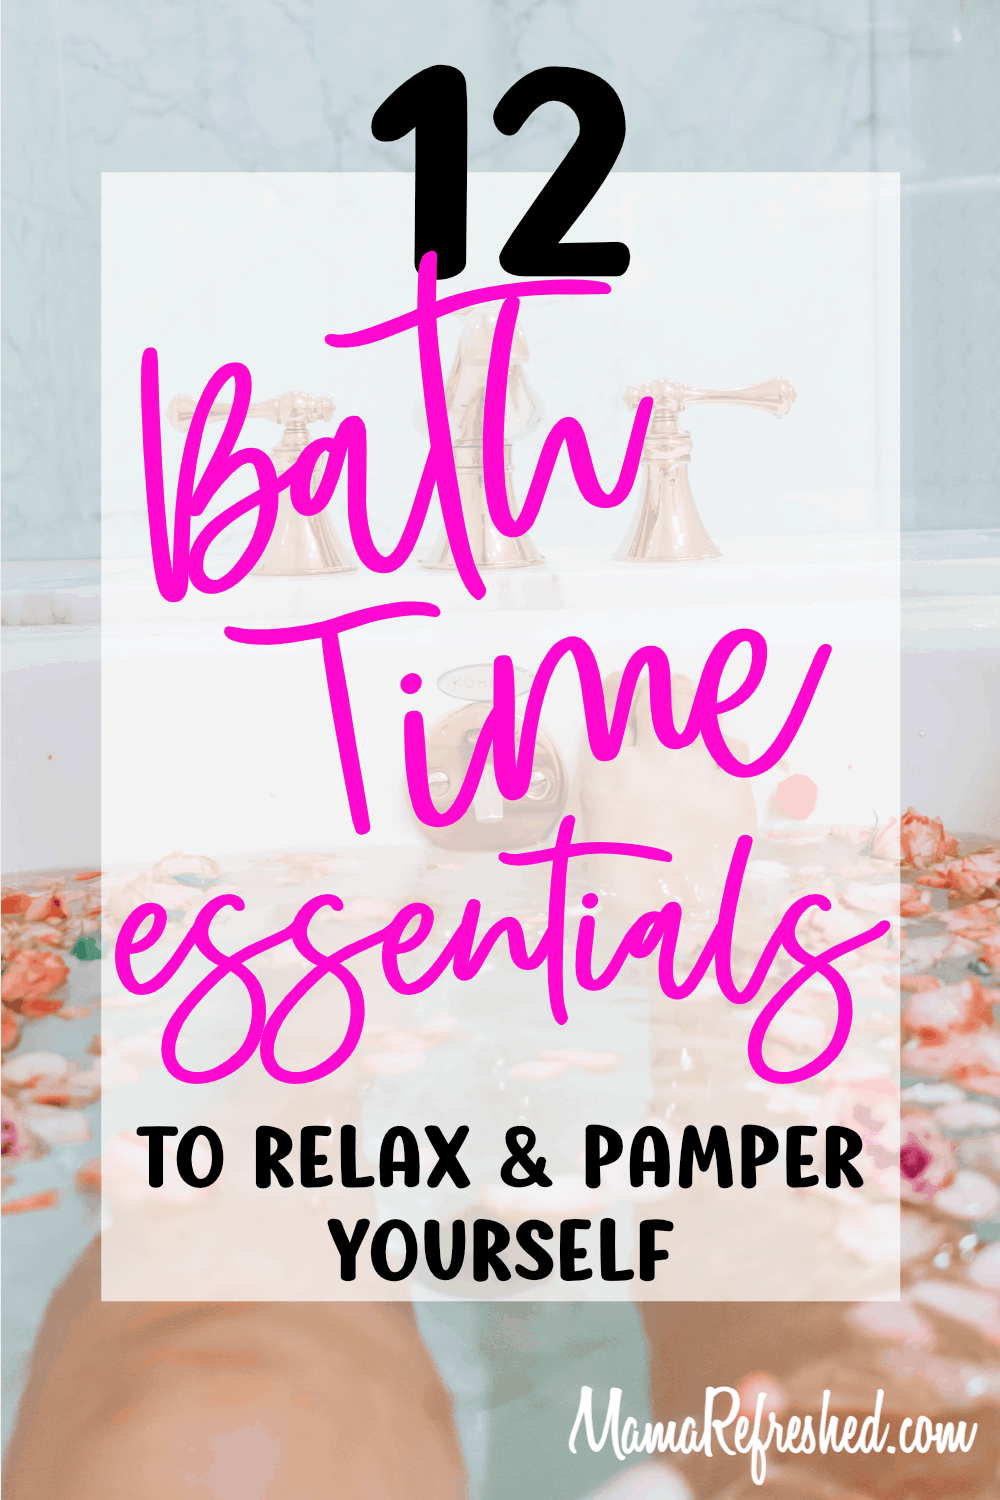 12 Bathing Essentials to Relax & Pamper Yourself